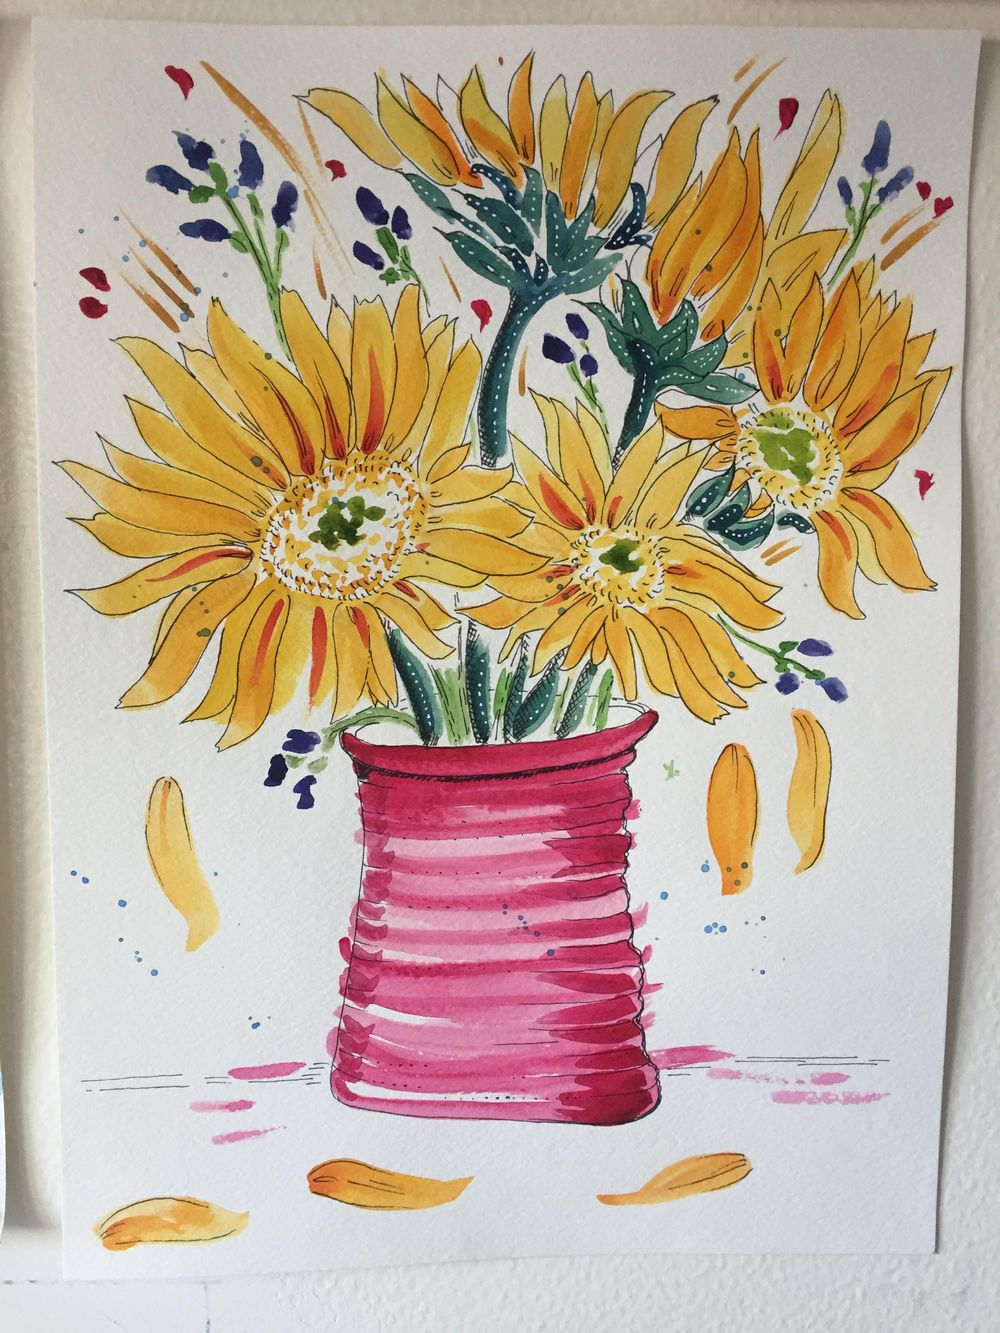 sunflowers in a vase - image 2 - student project